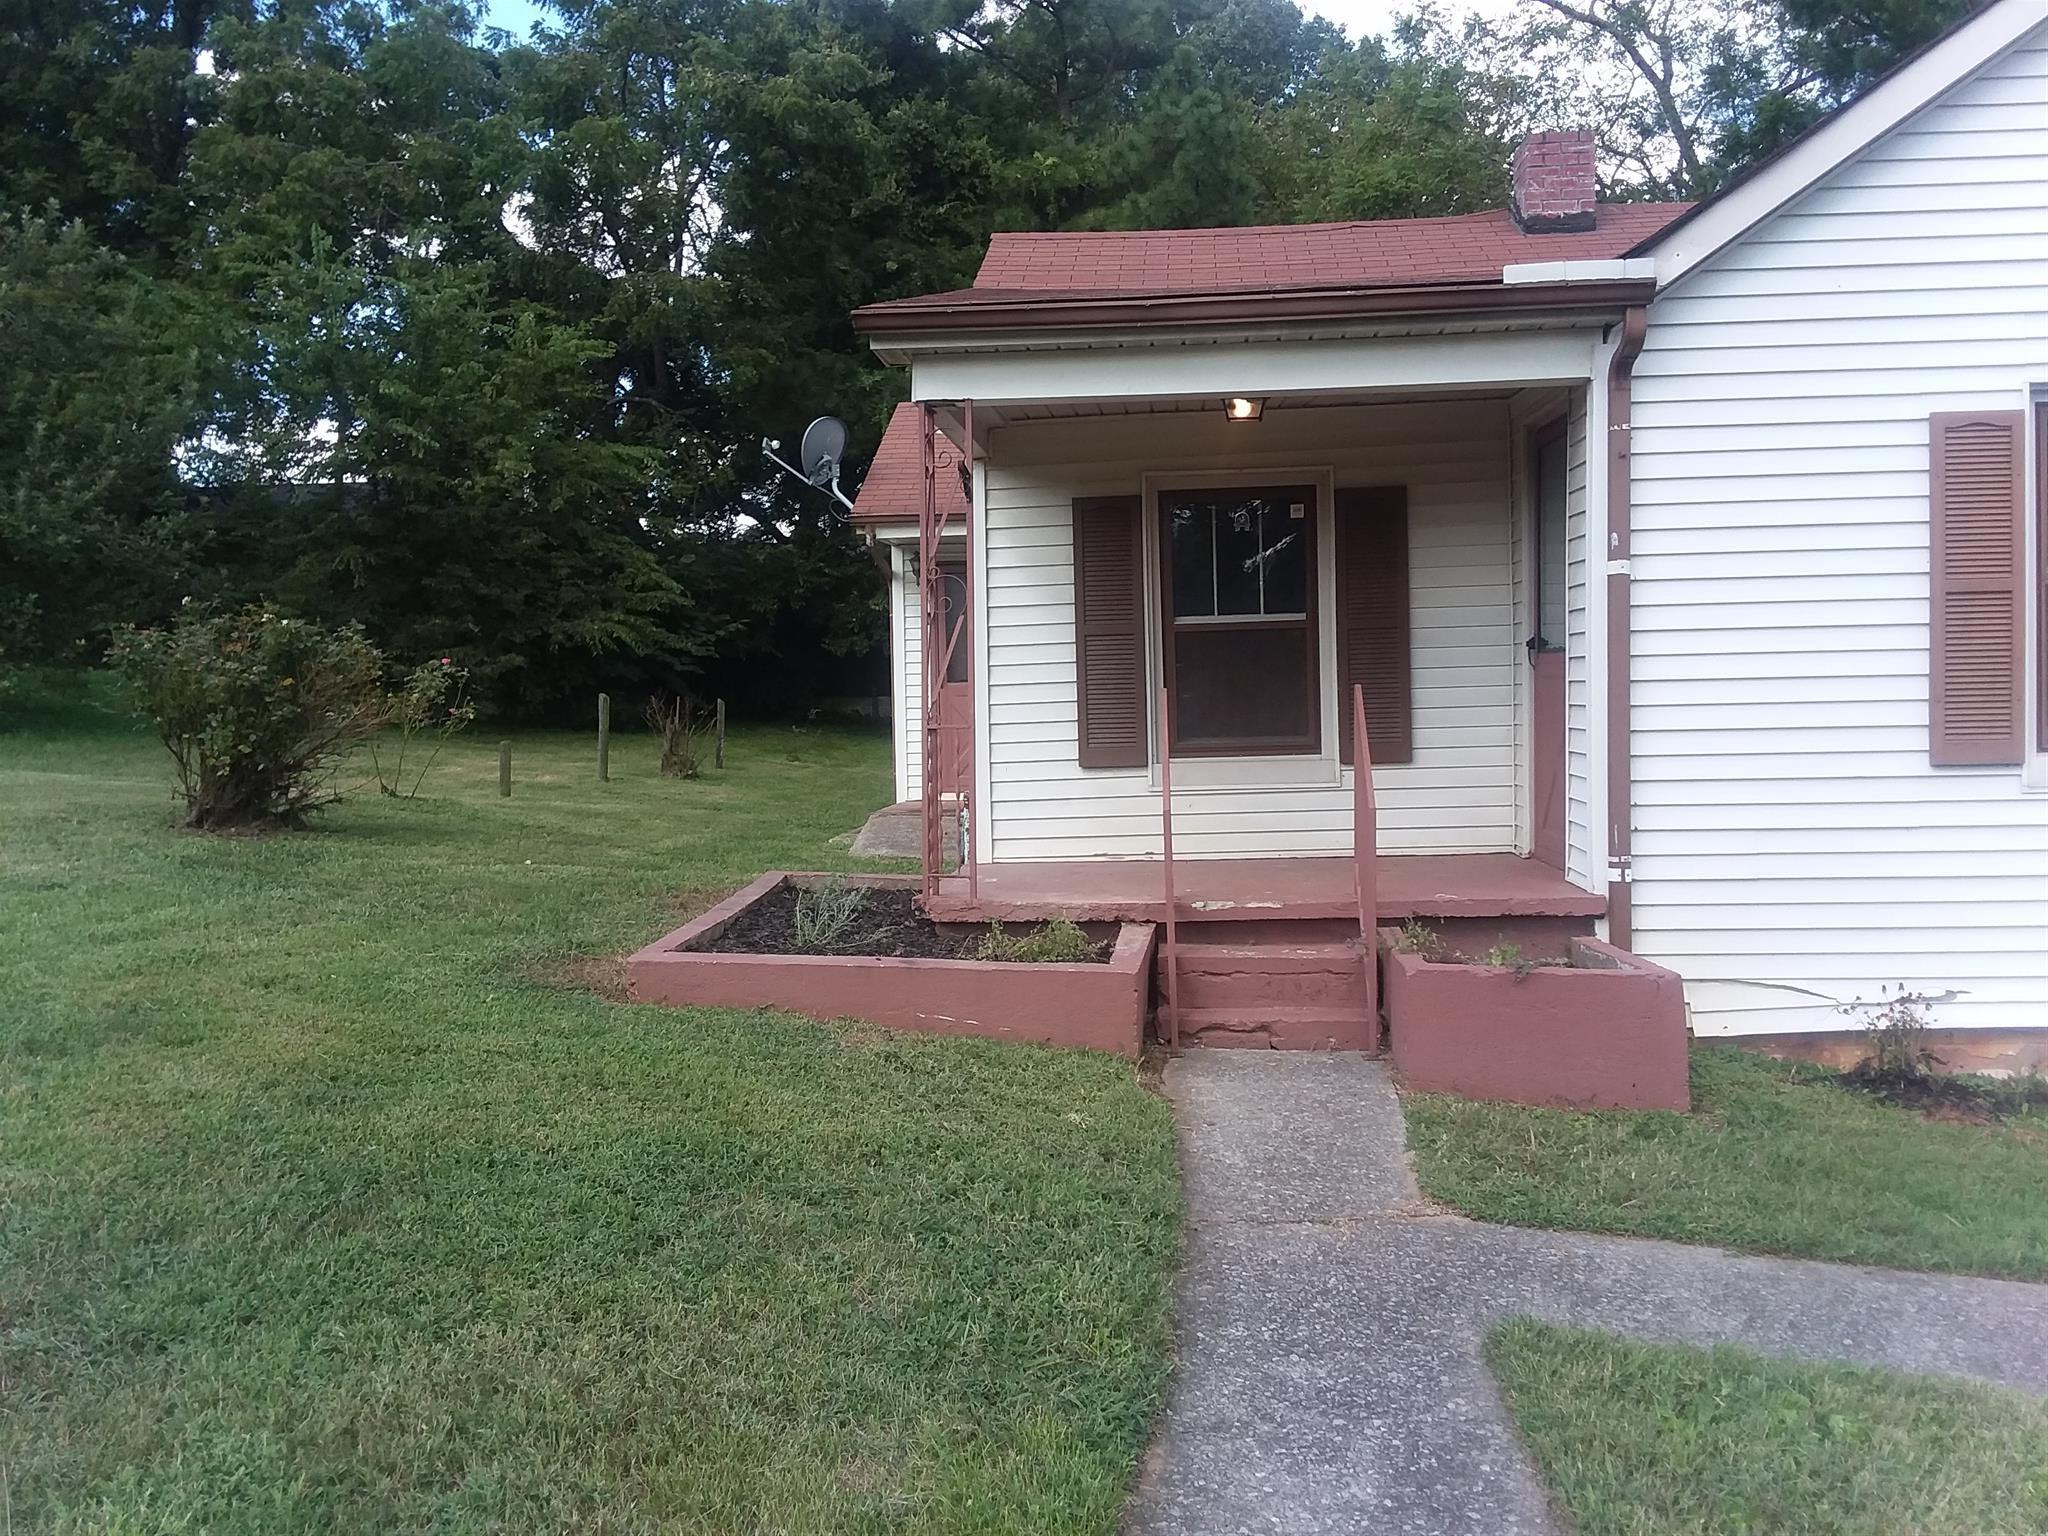 Photo of 403 N Mabel St  Springfield  TN